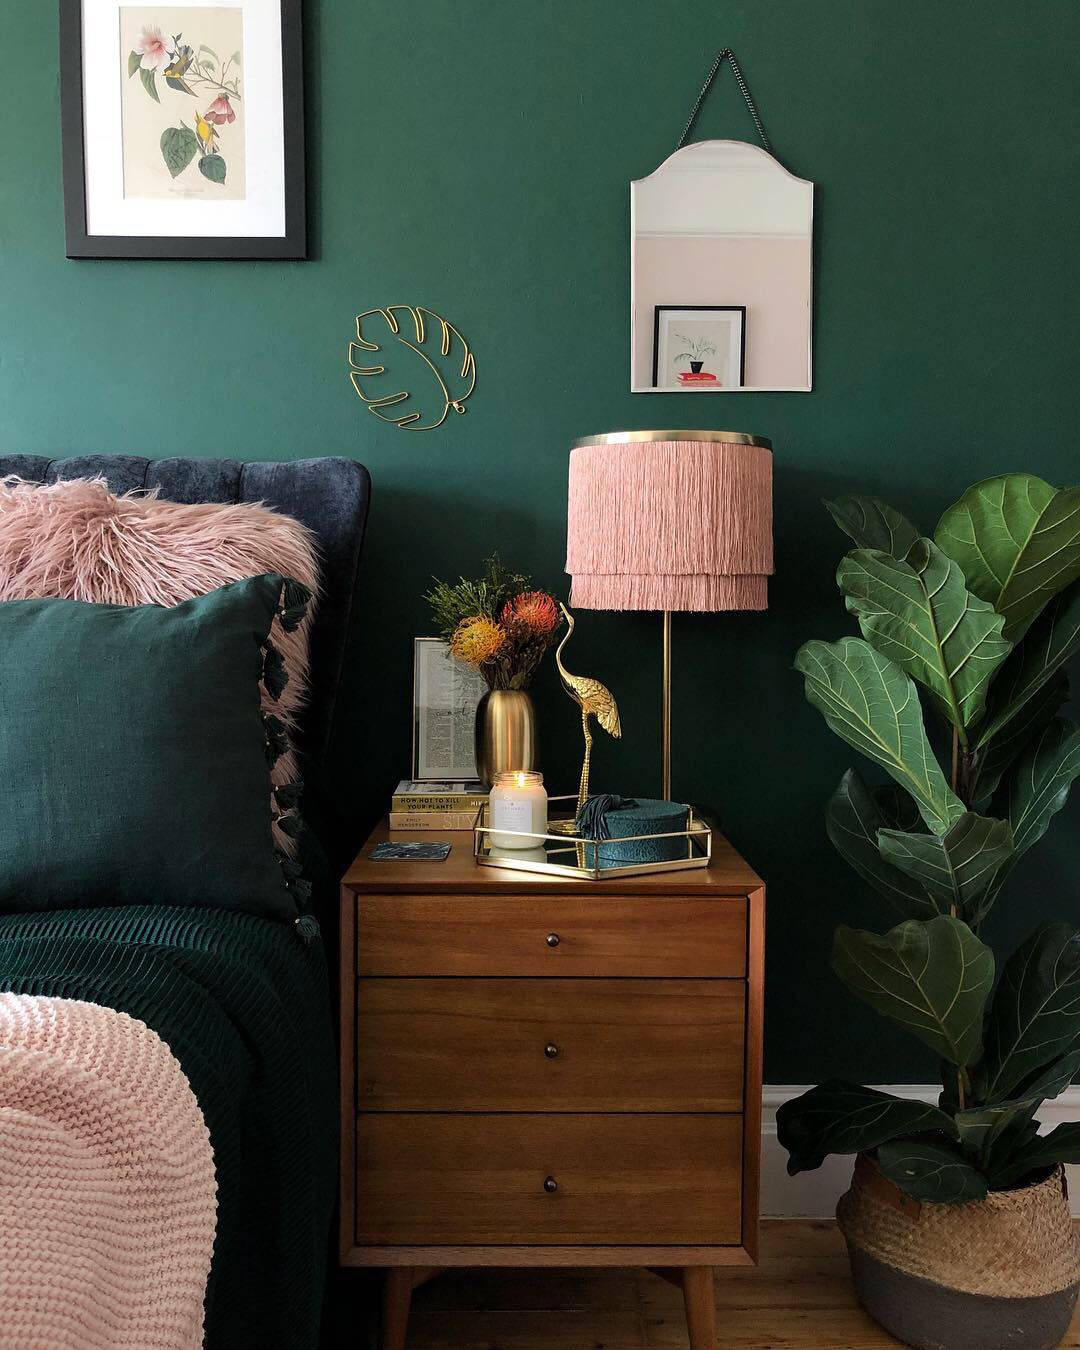 Dark Green And Blush Pink Decor In Bedroom With Mid Century Twist Homedecor Bedroom Darkdecor Gree Best Bedroom Colors Home Decor Bedroom Green Home Decor